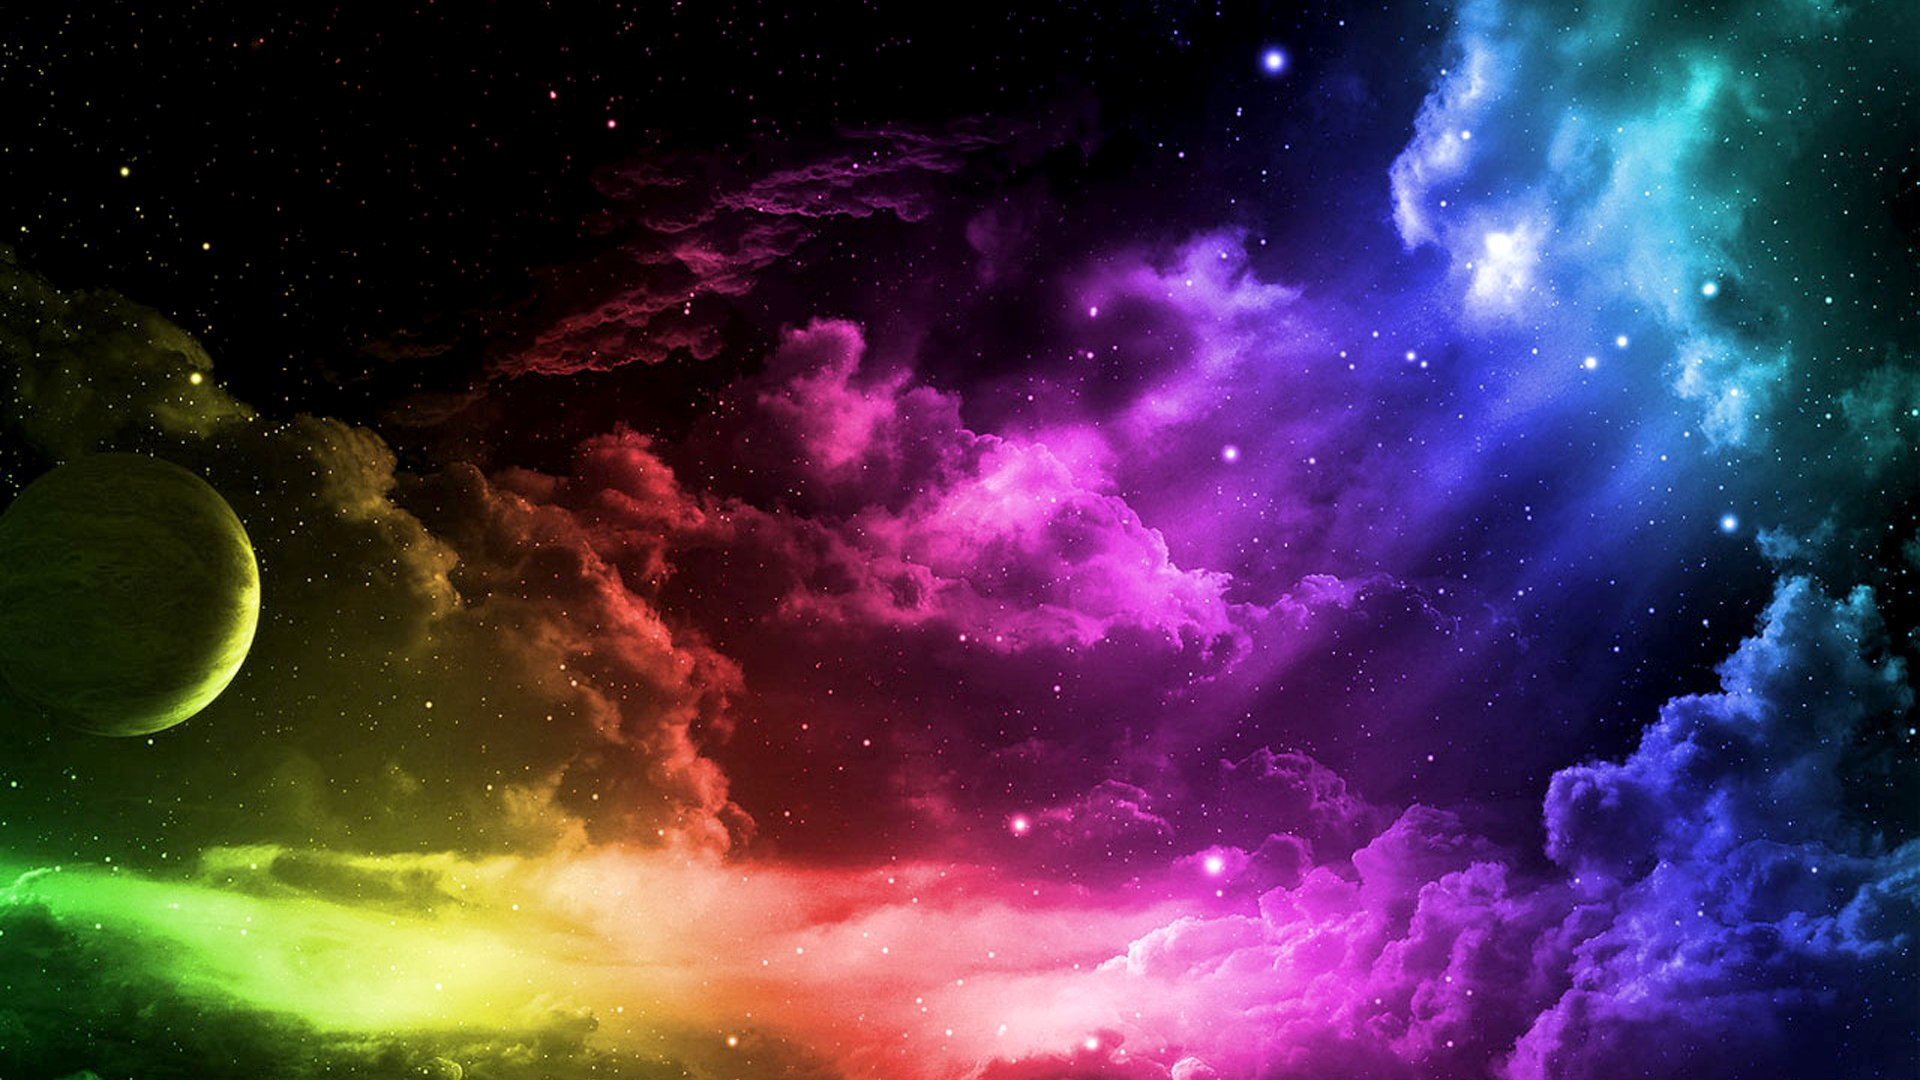 Get colorful backgrounds for your desktop and give it a more 1920x1080